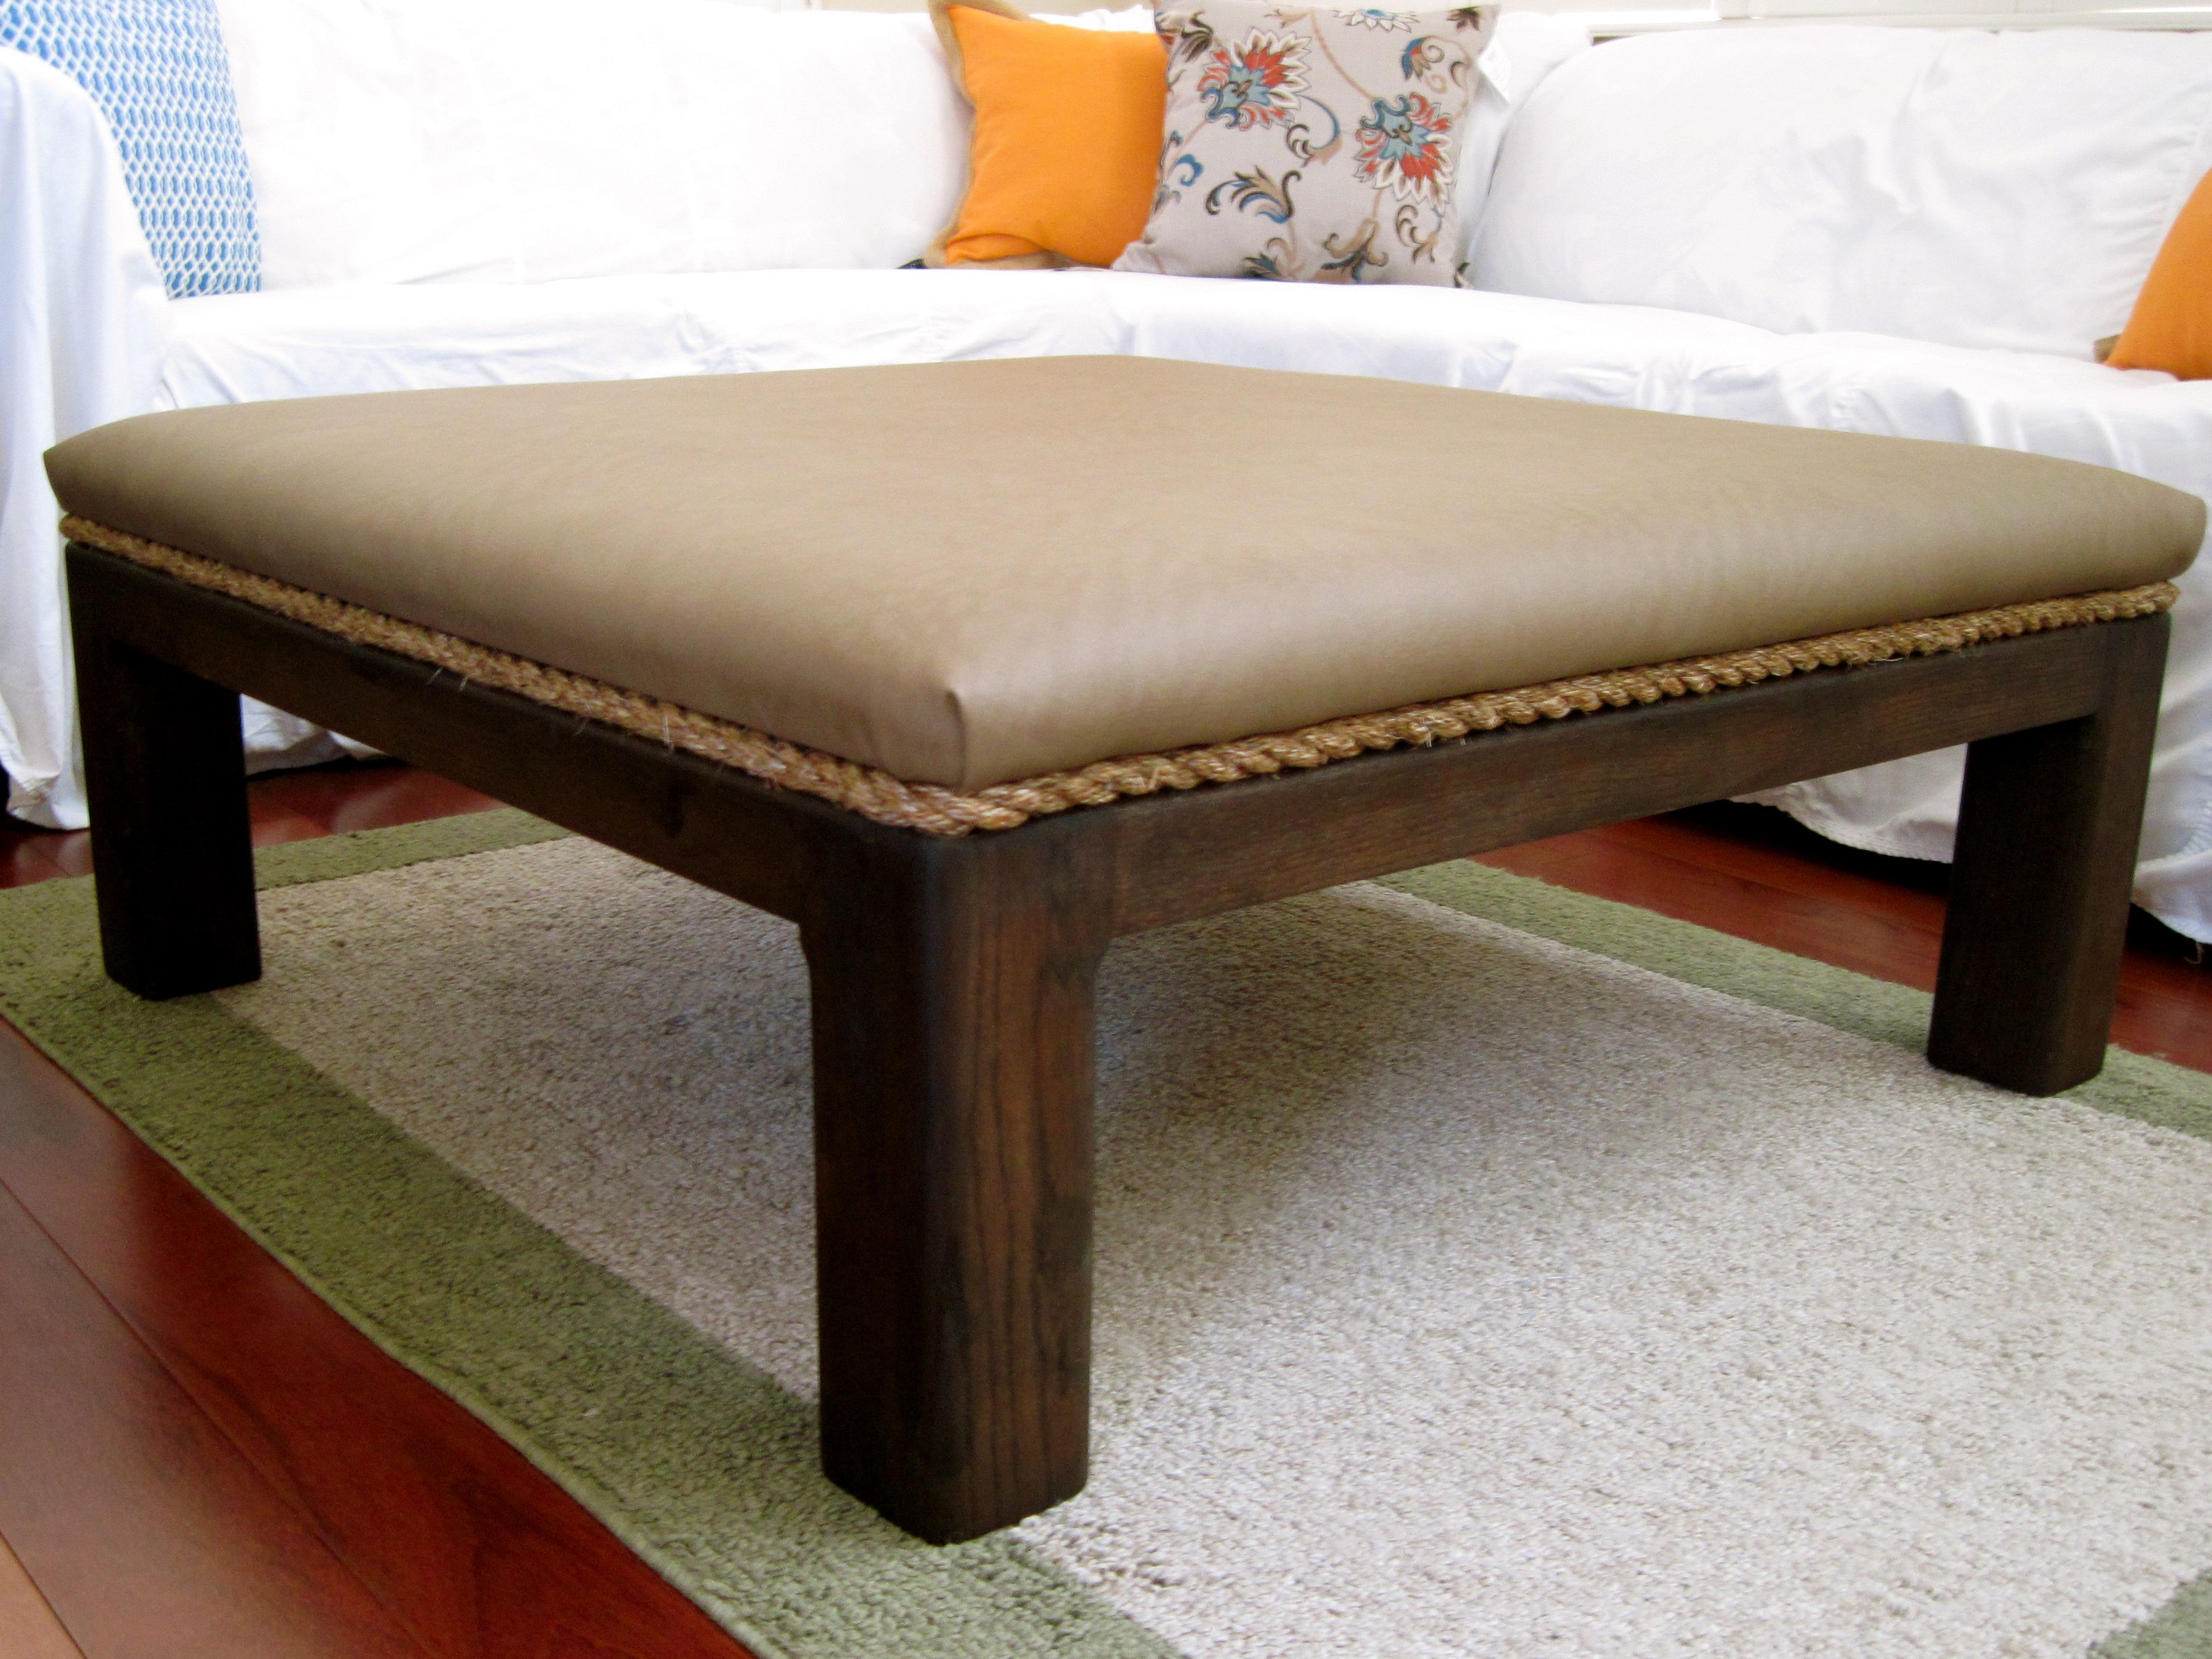 From 80's parquet coffee table to a sleek padded ottoman with a dark kona high gloss finish.